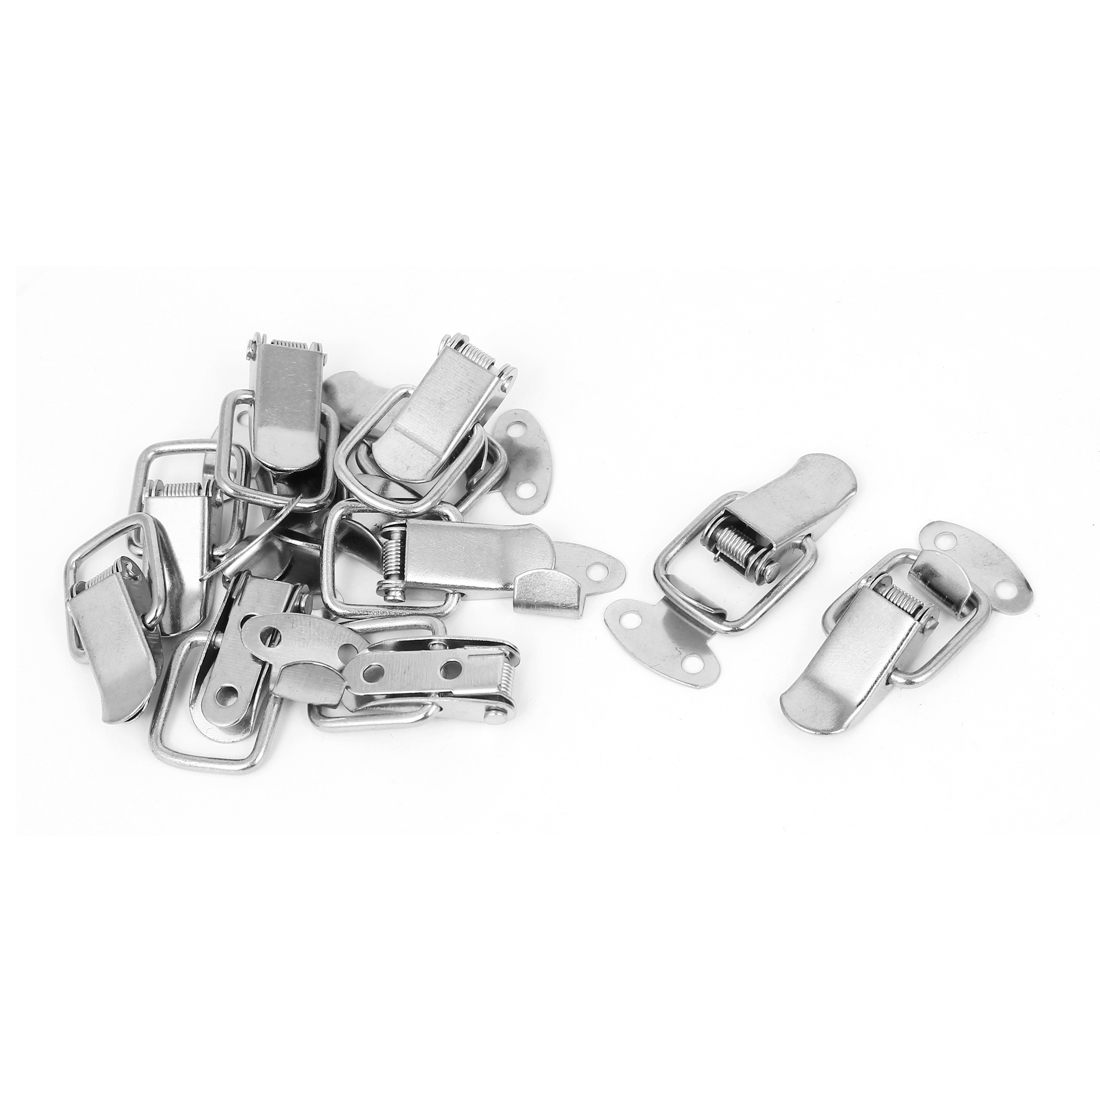 Drawer Toolbox Metal Spring Loaded Toggle Draw Latch Catch Hasp 10pcs